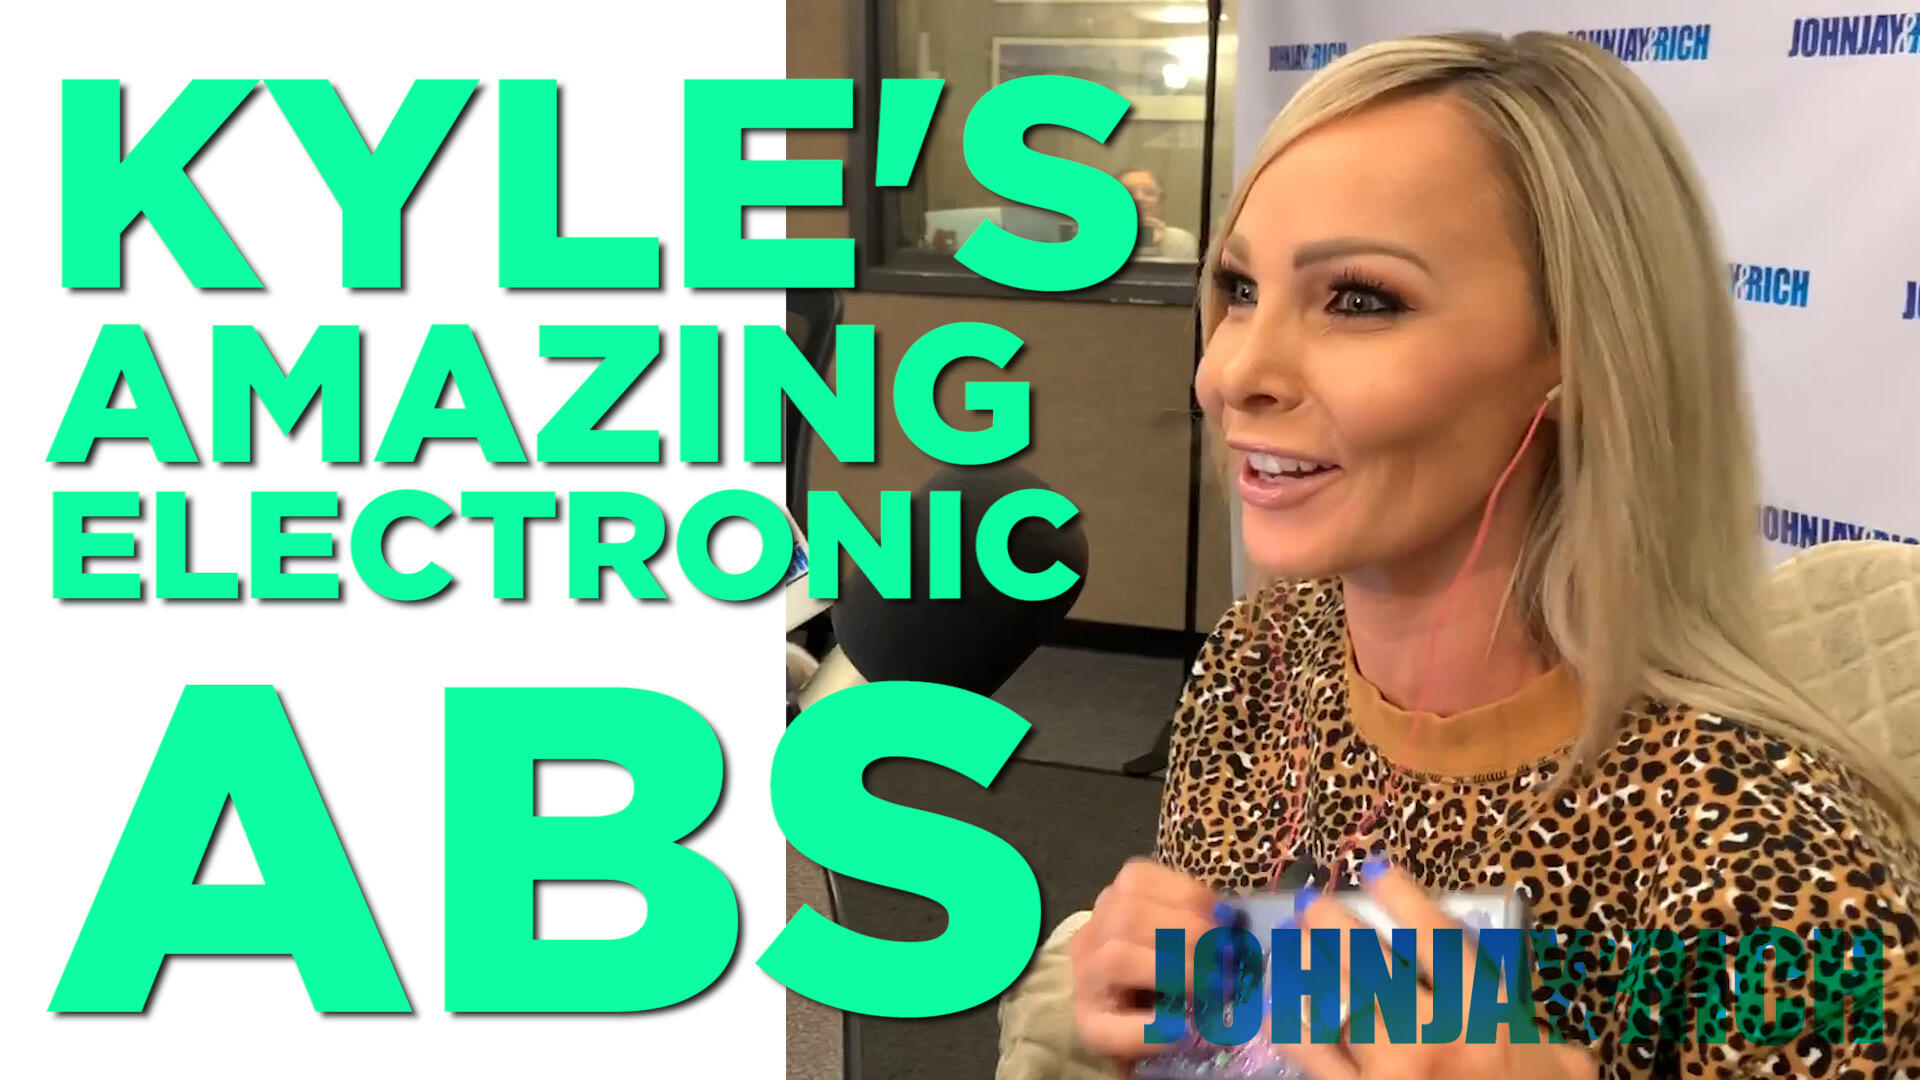 Kyle's Amazing Electronic Abs!